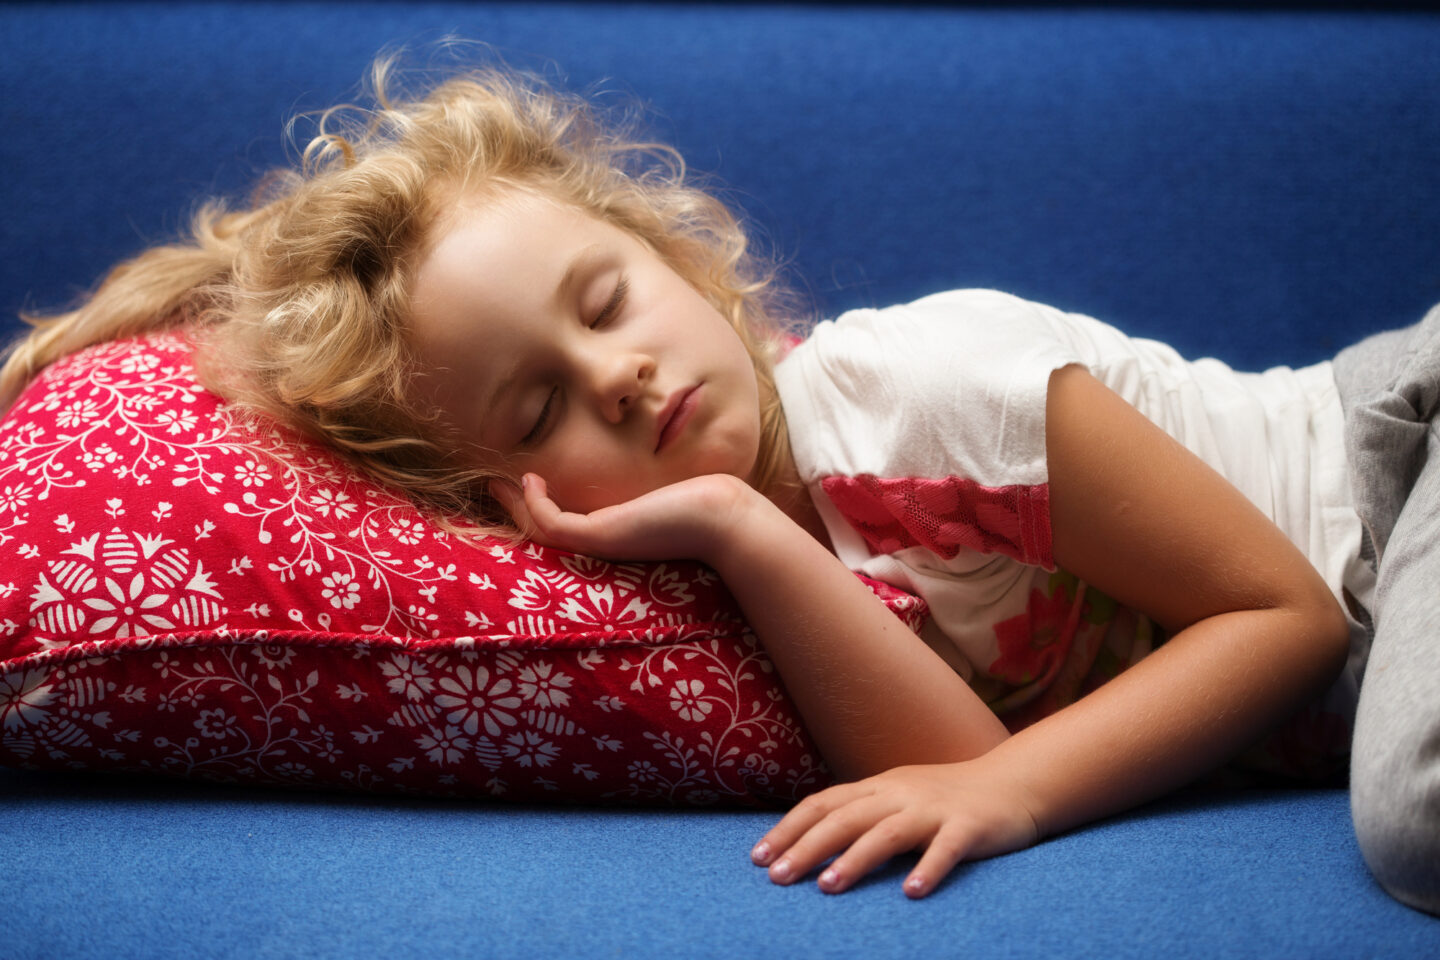 Little girl having a danger nap on a blue sofa with a red pillow